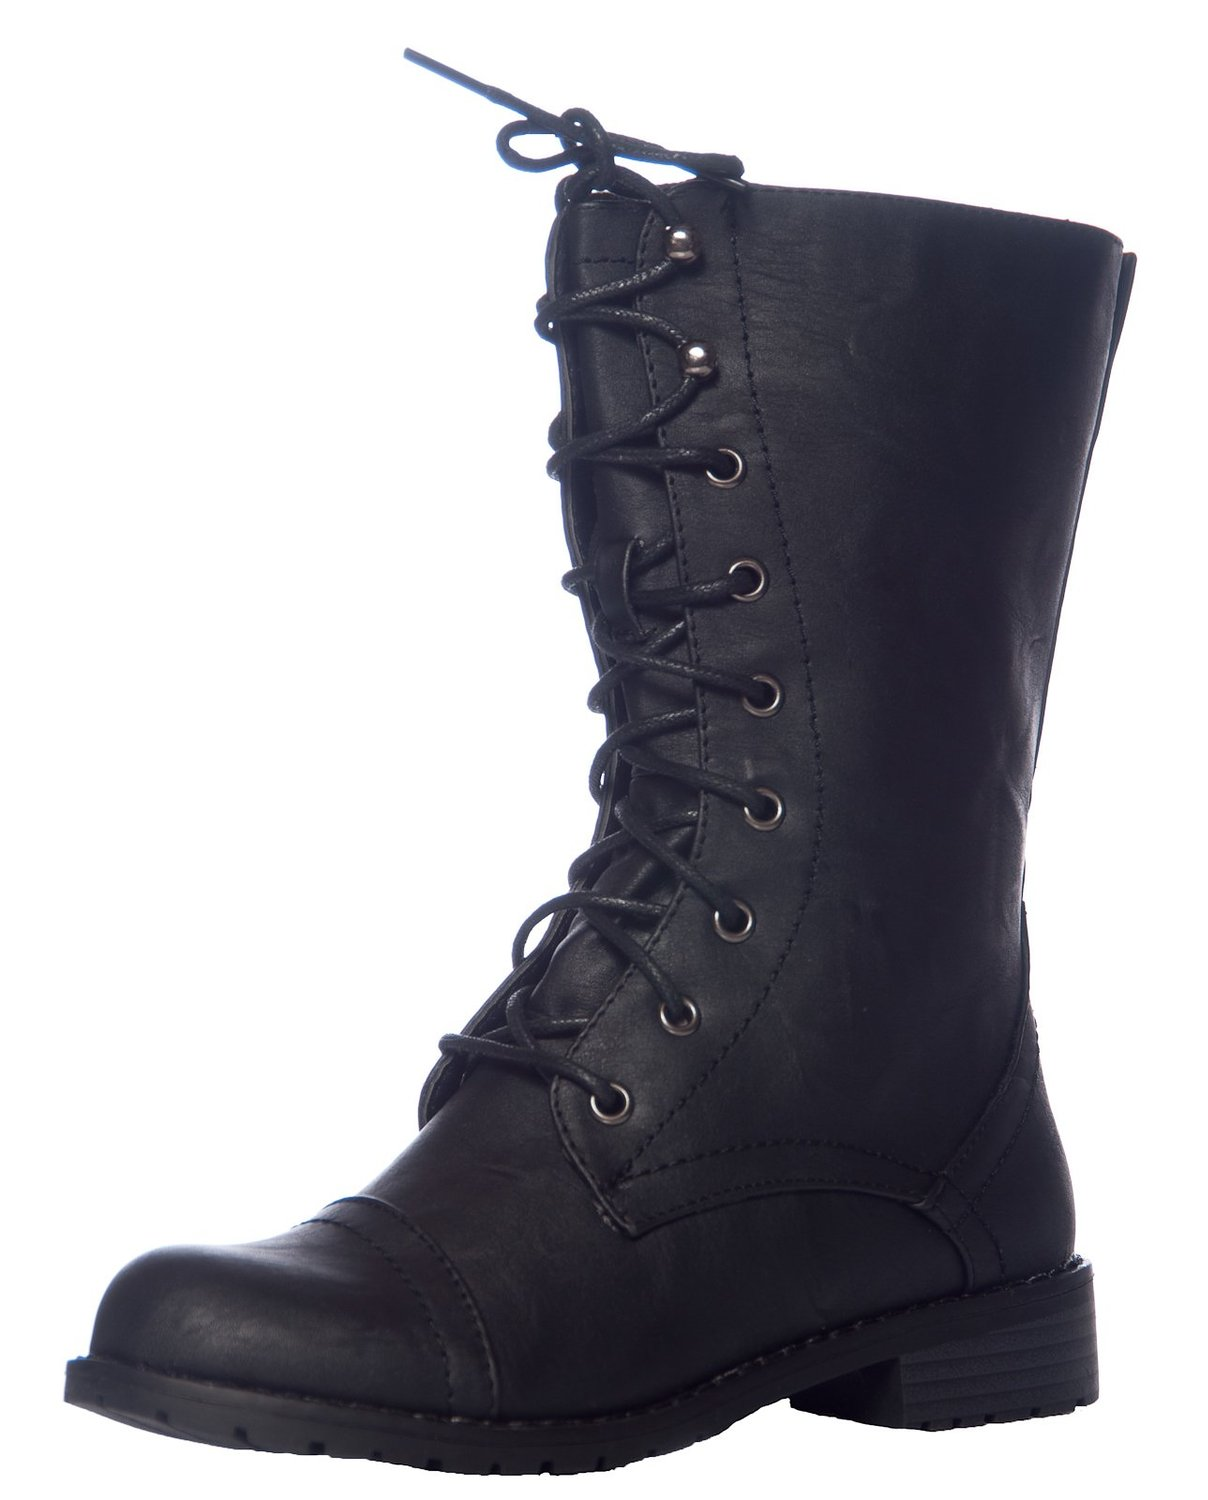 Amazon.com: Lug 11 Womens Military Lace up Combat Boot: Clothing